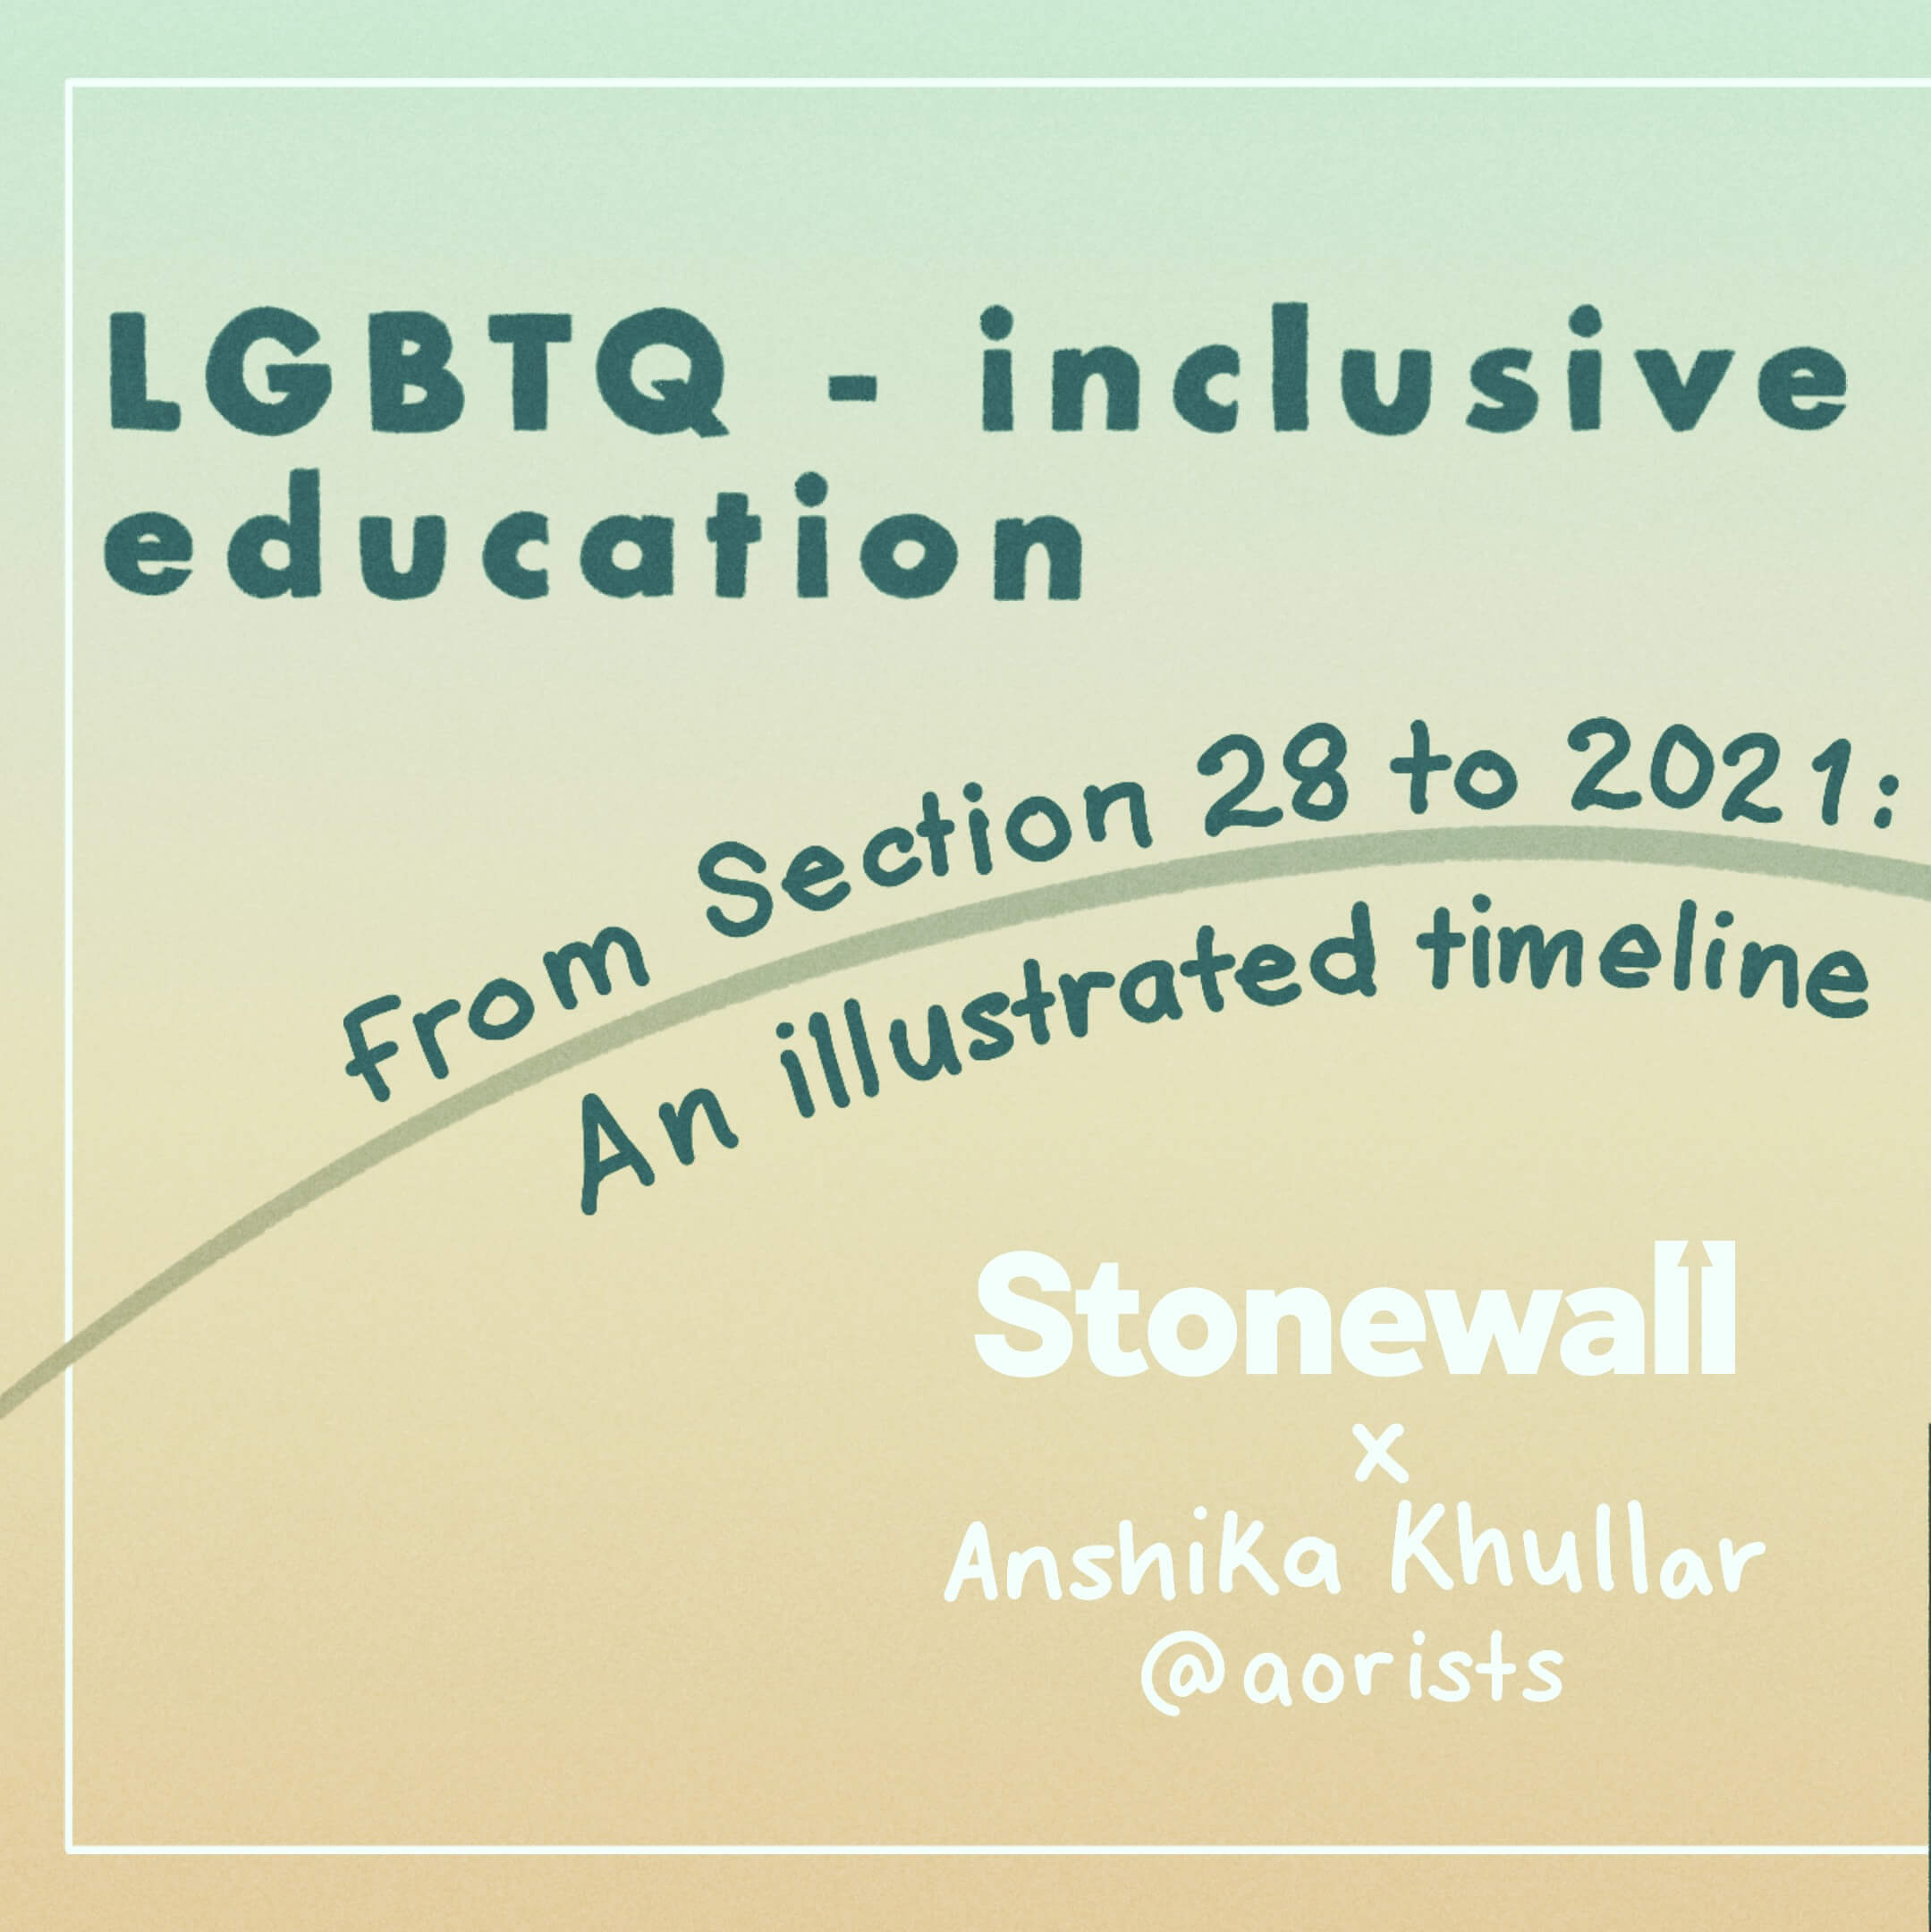 TITLE: LGBTQ-inclusive education. From Section 28 to 2021: An illustrated timeline. Stonewall logo and Anshika's insta handle/name on each slide